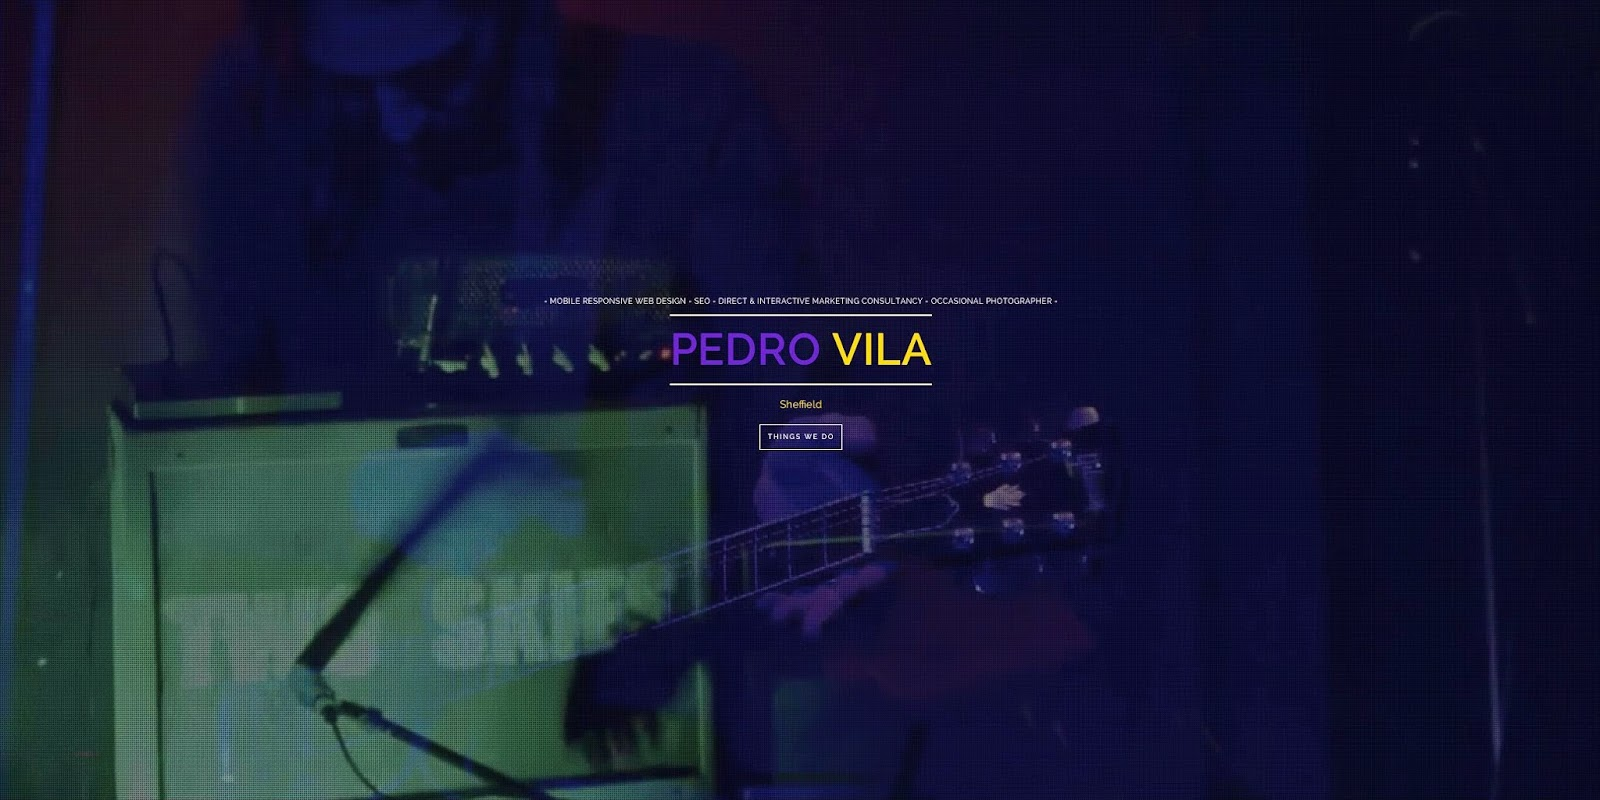 Pedro Vila Web Design Sheffield